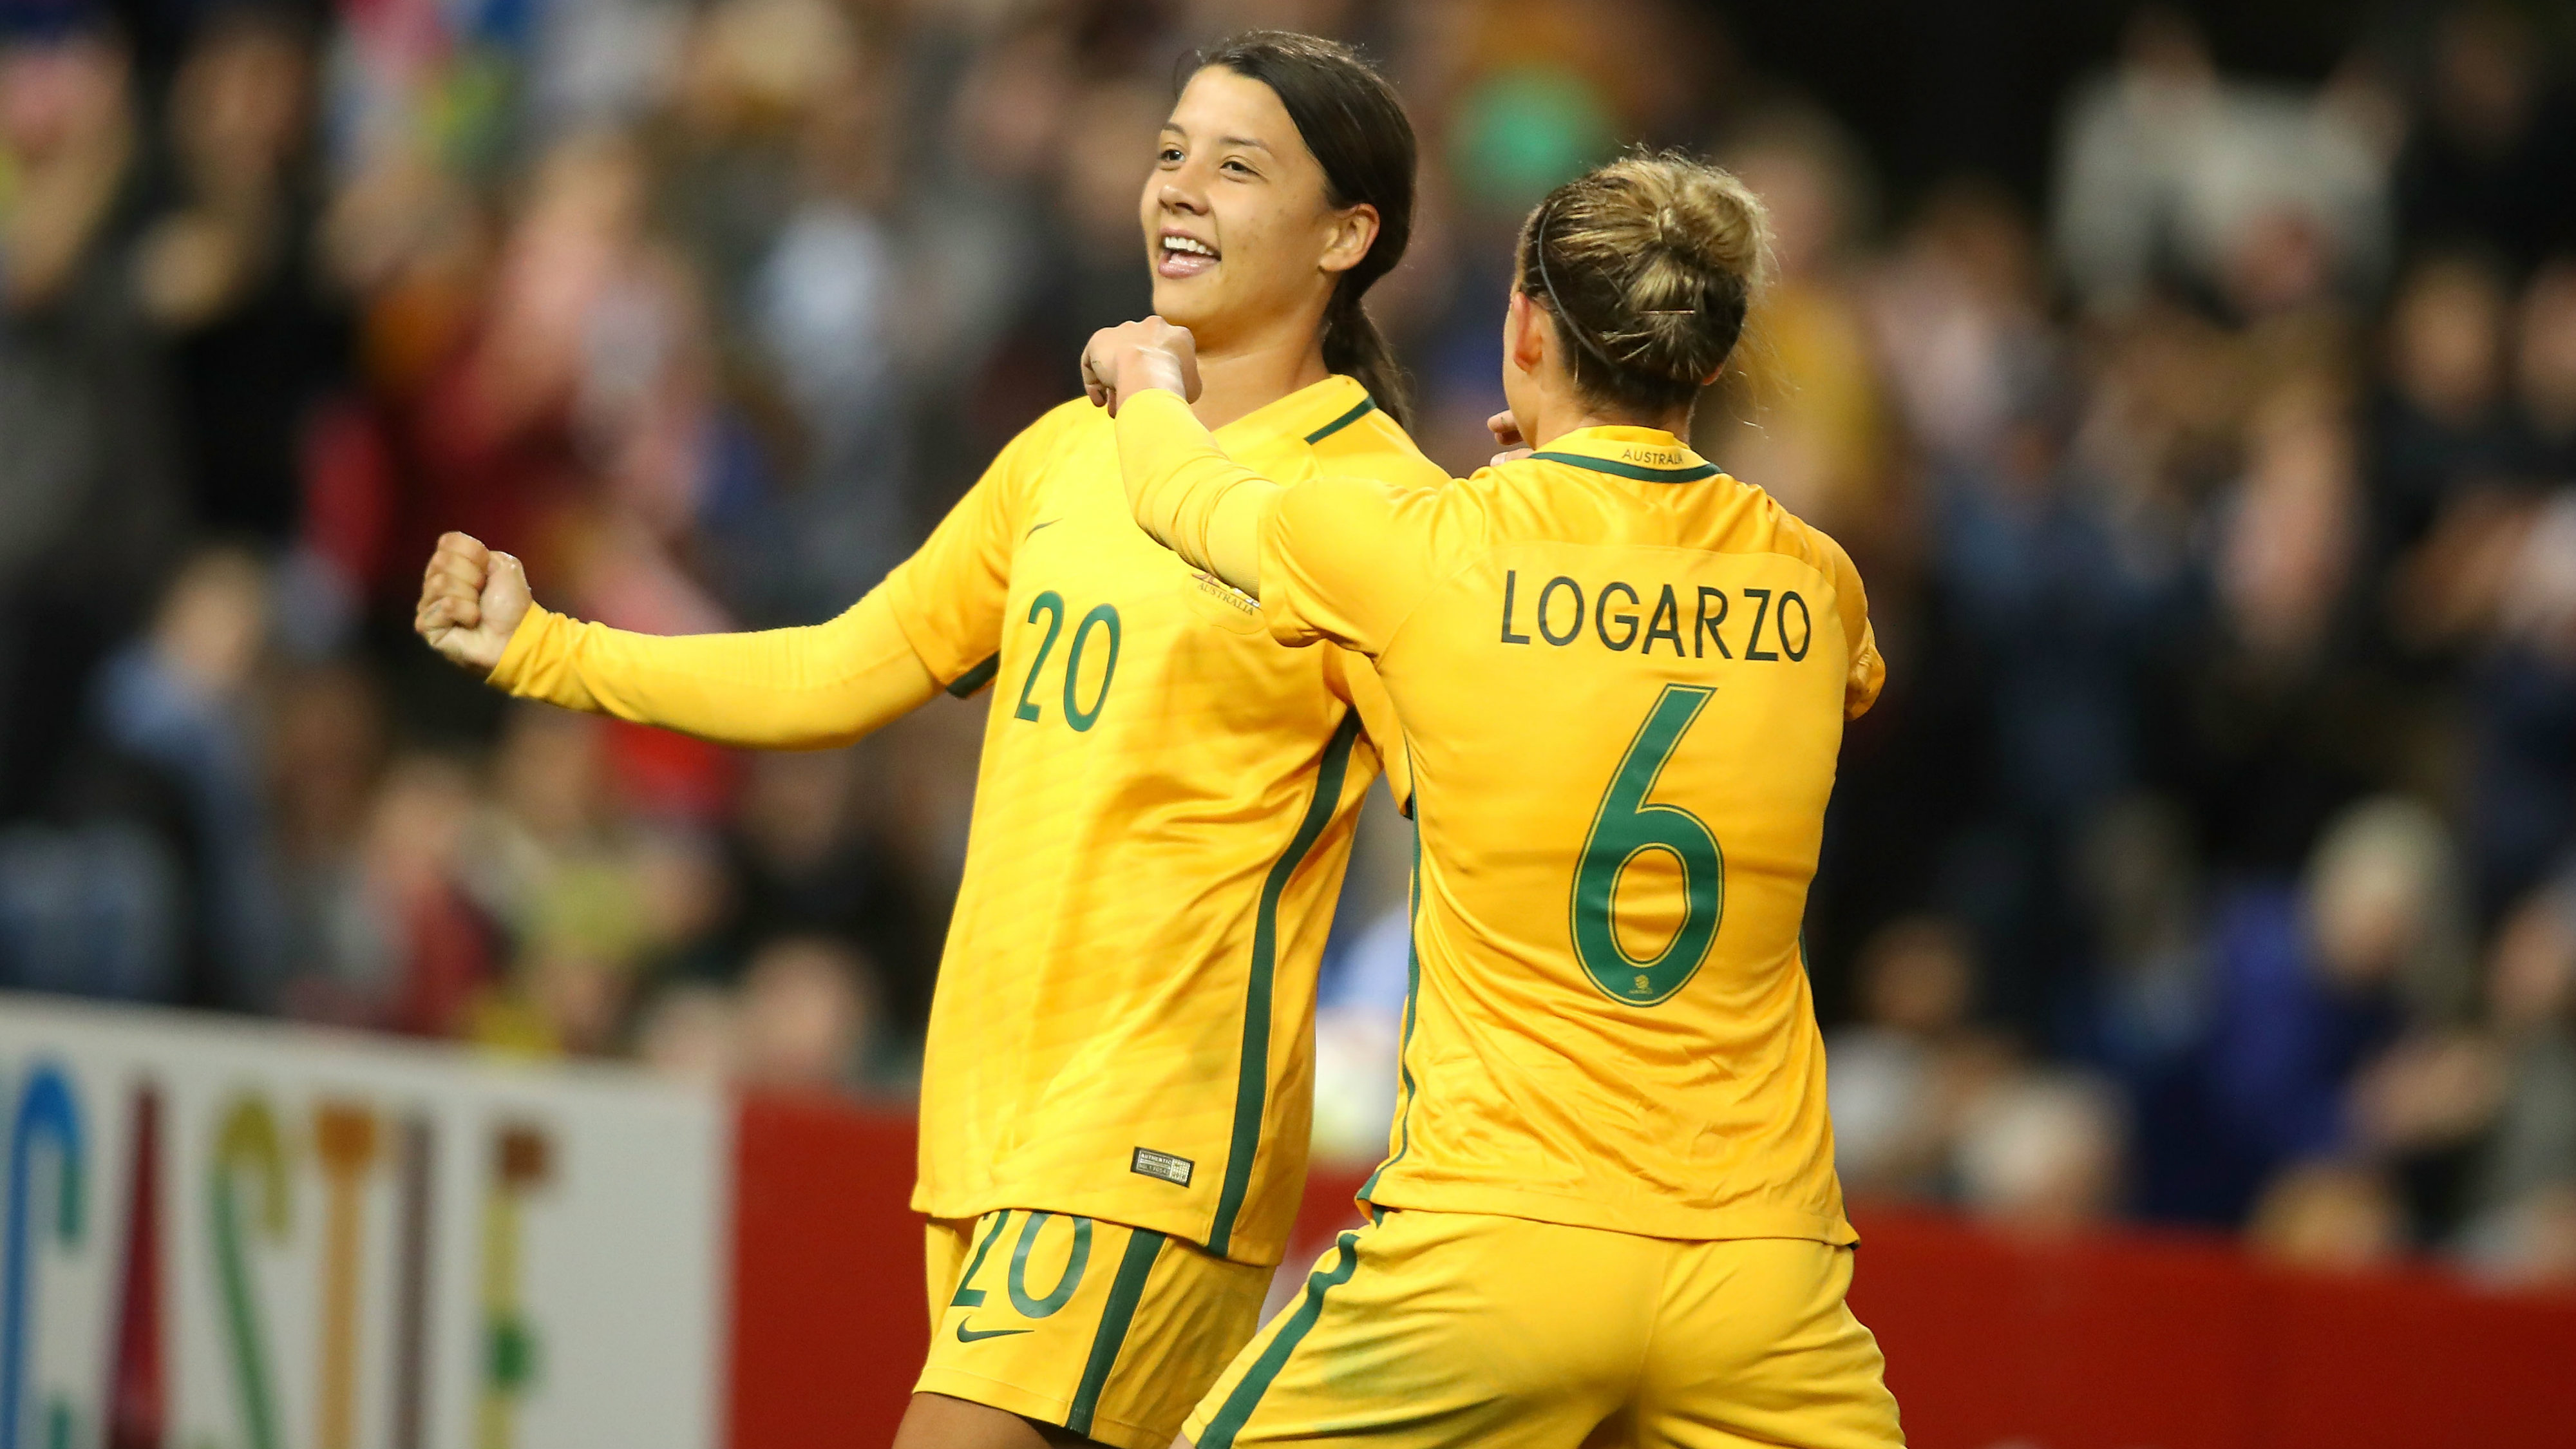 Tickets for the Westfield Matildas' clashes with China are now on sale.